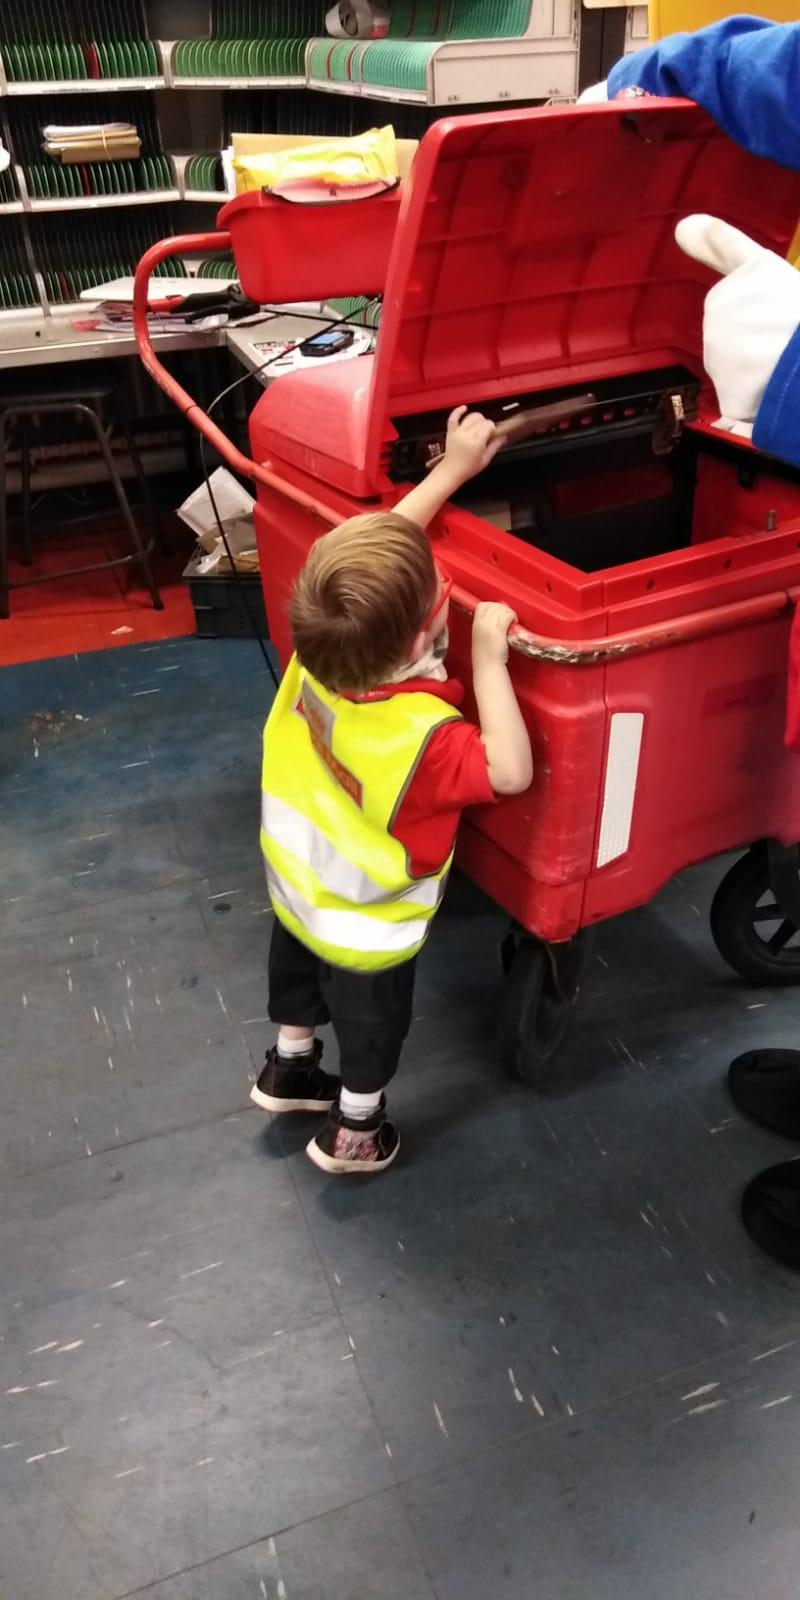 H loads the postal trolley.